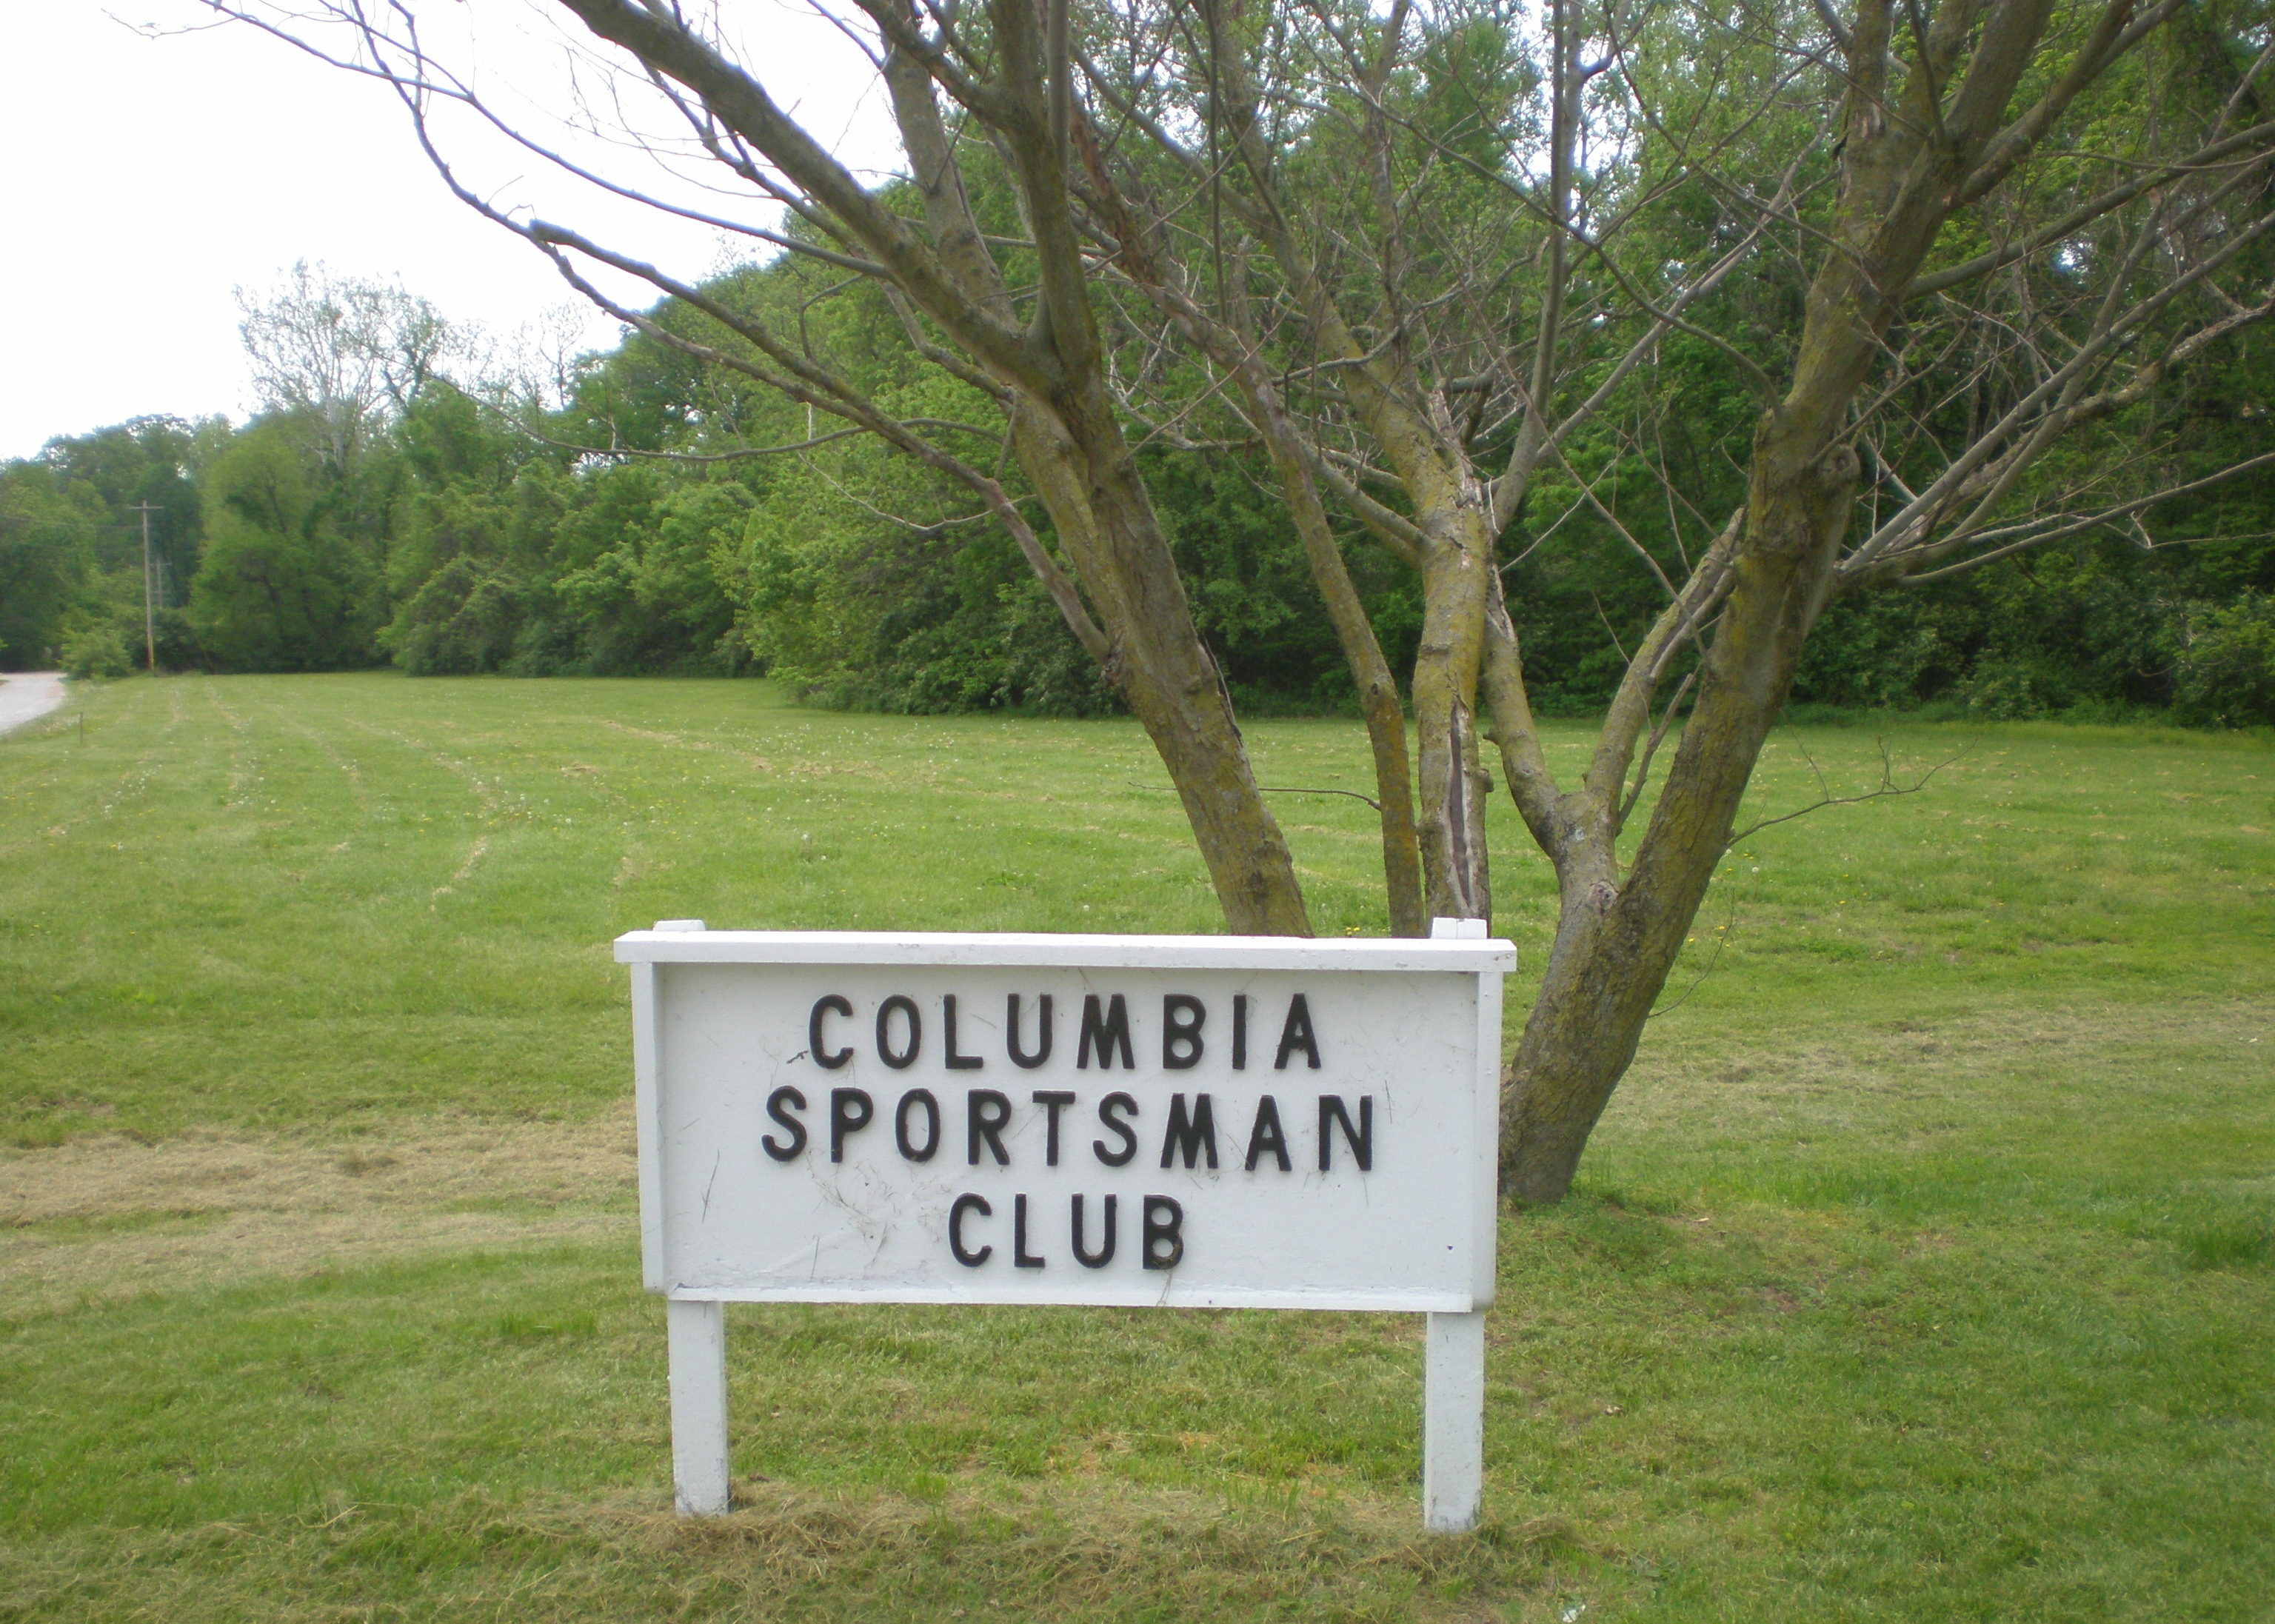 Columbia Sportsman Club Illinois